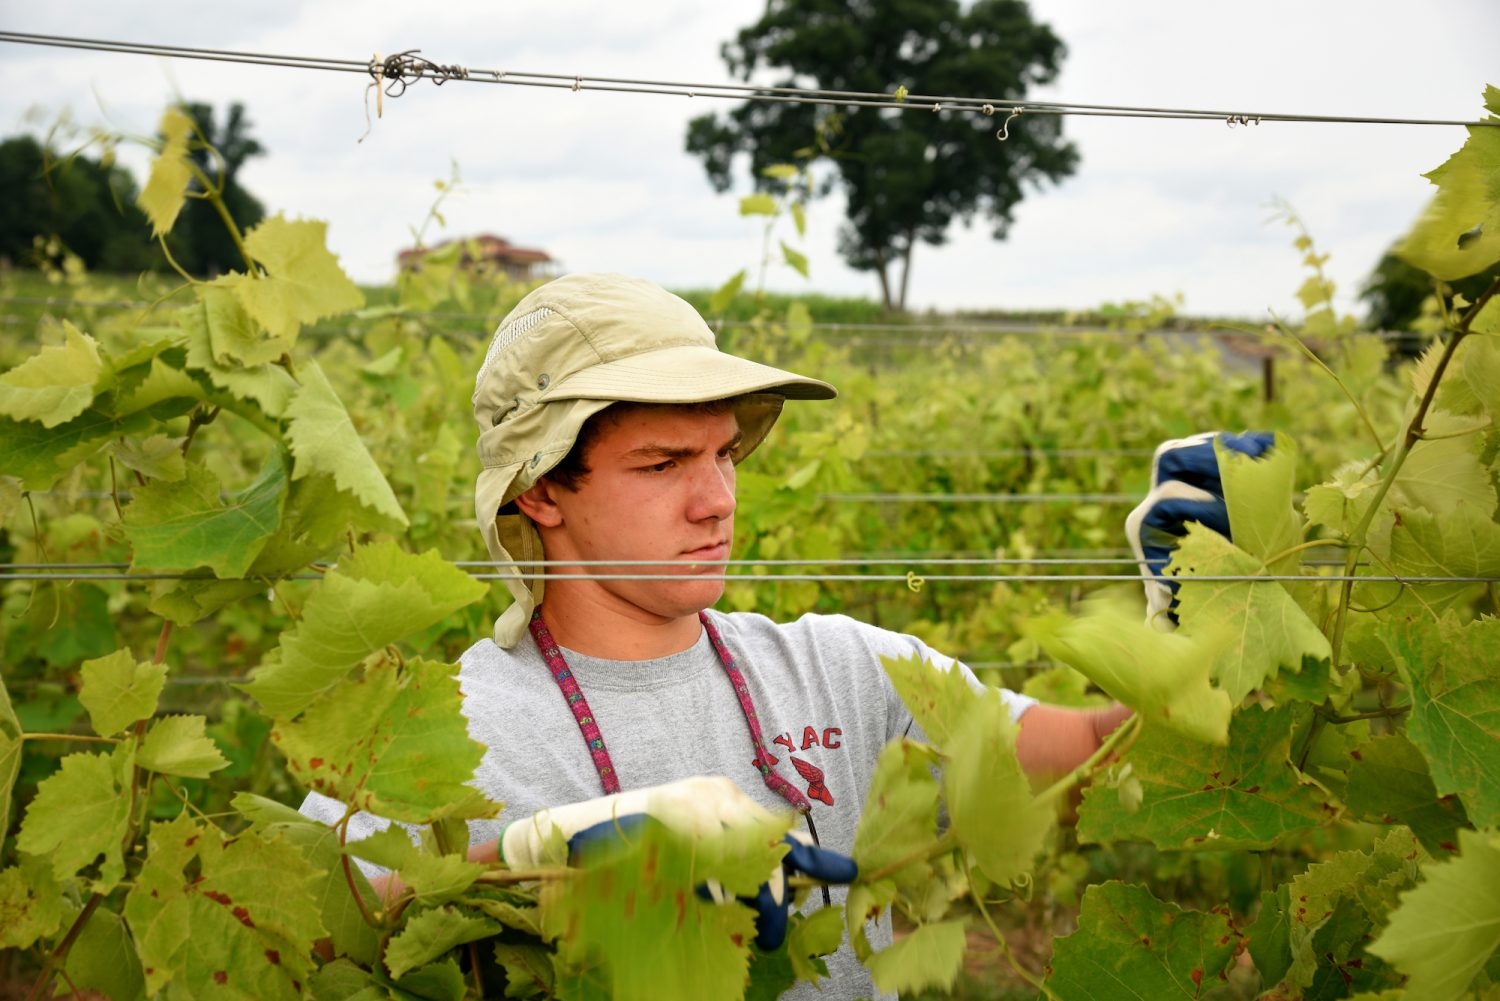 student tends to grape vines in a field